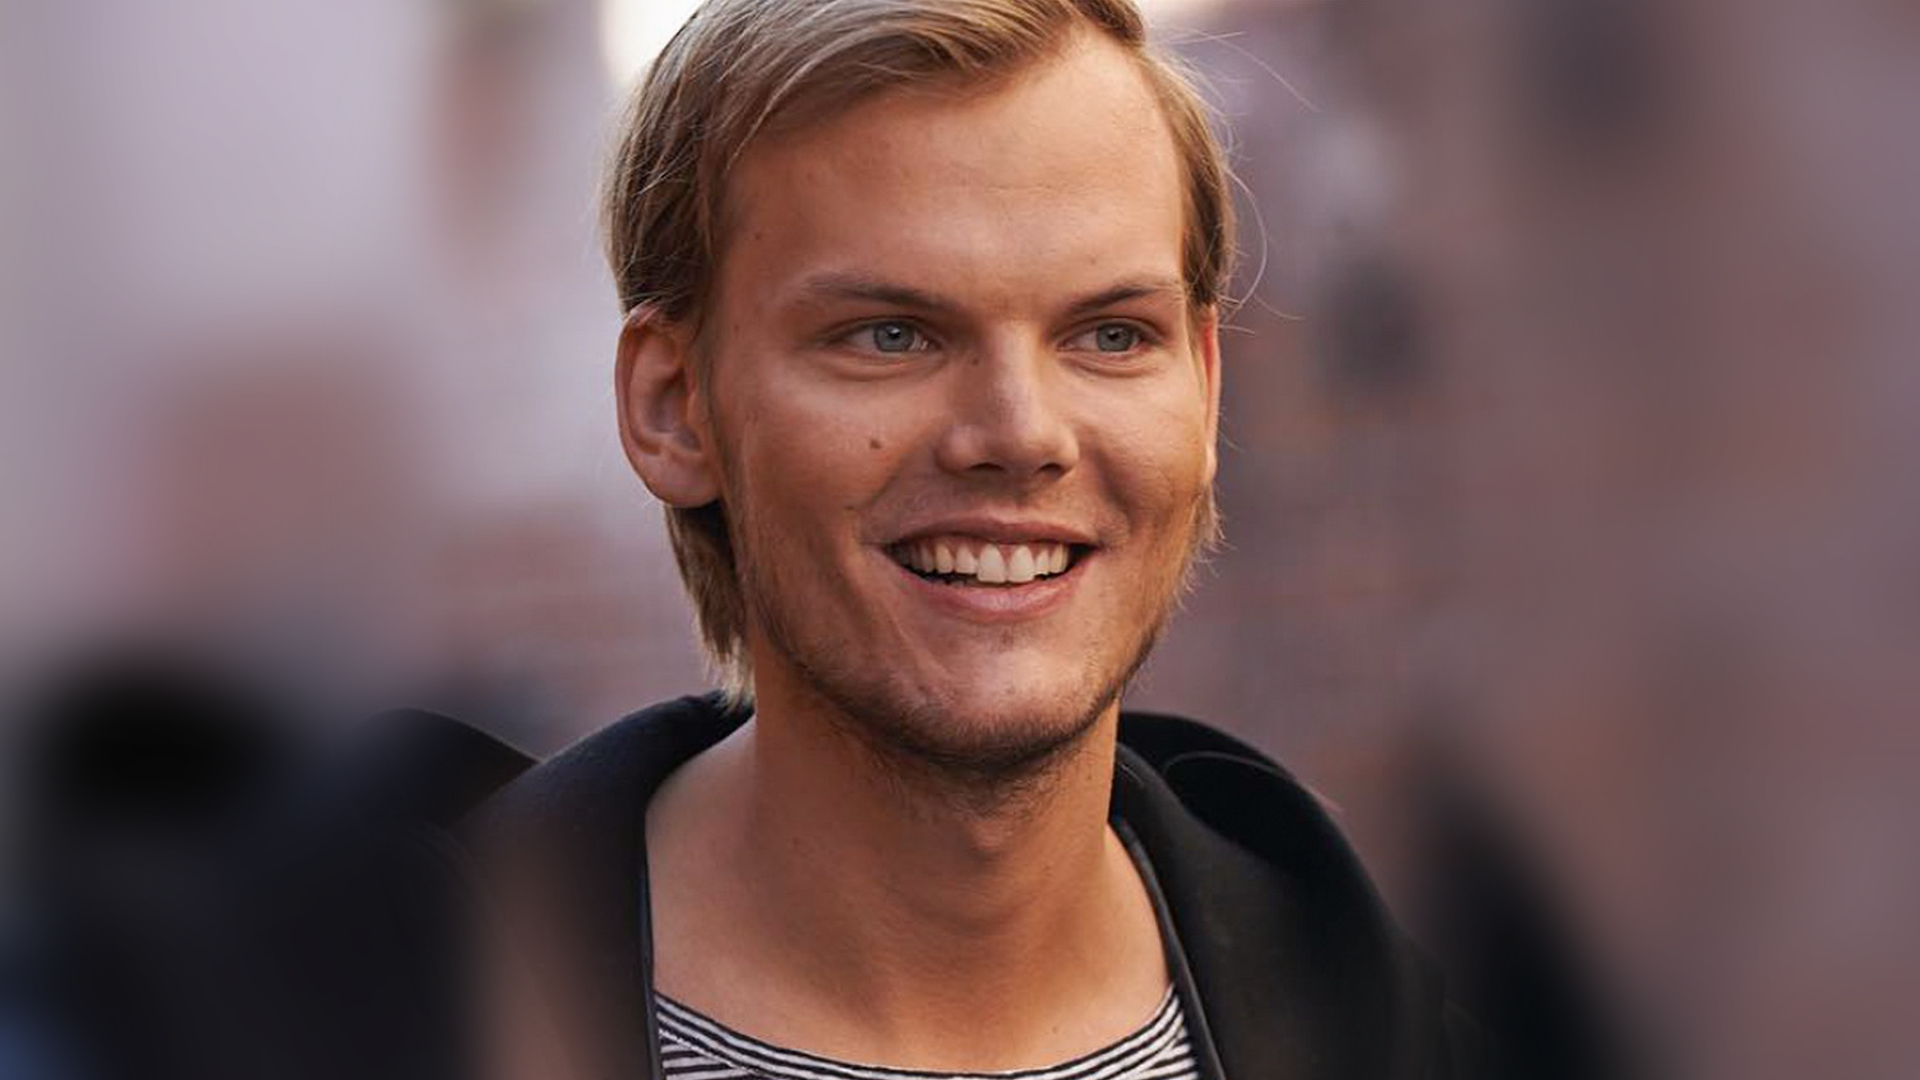 Tim Bergling-Avicii ( 8 September 1989 – 20 April 2018)